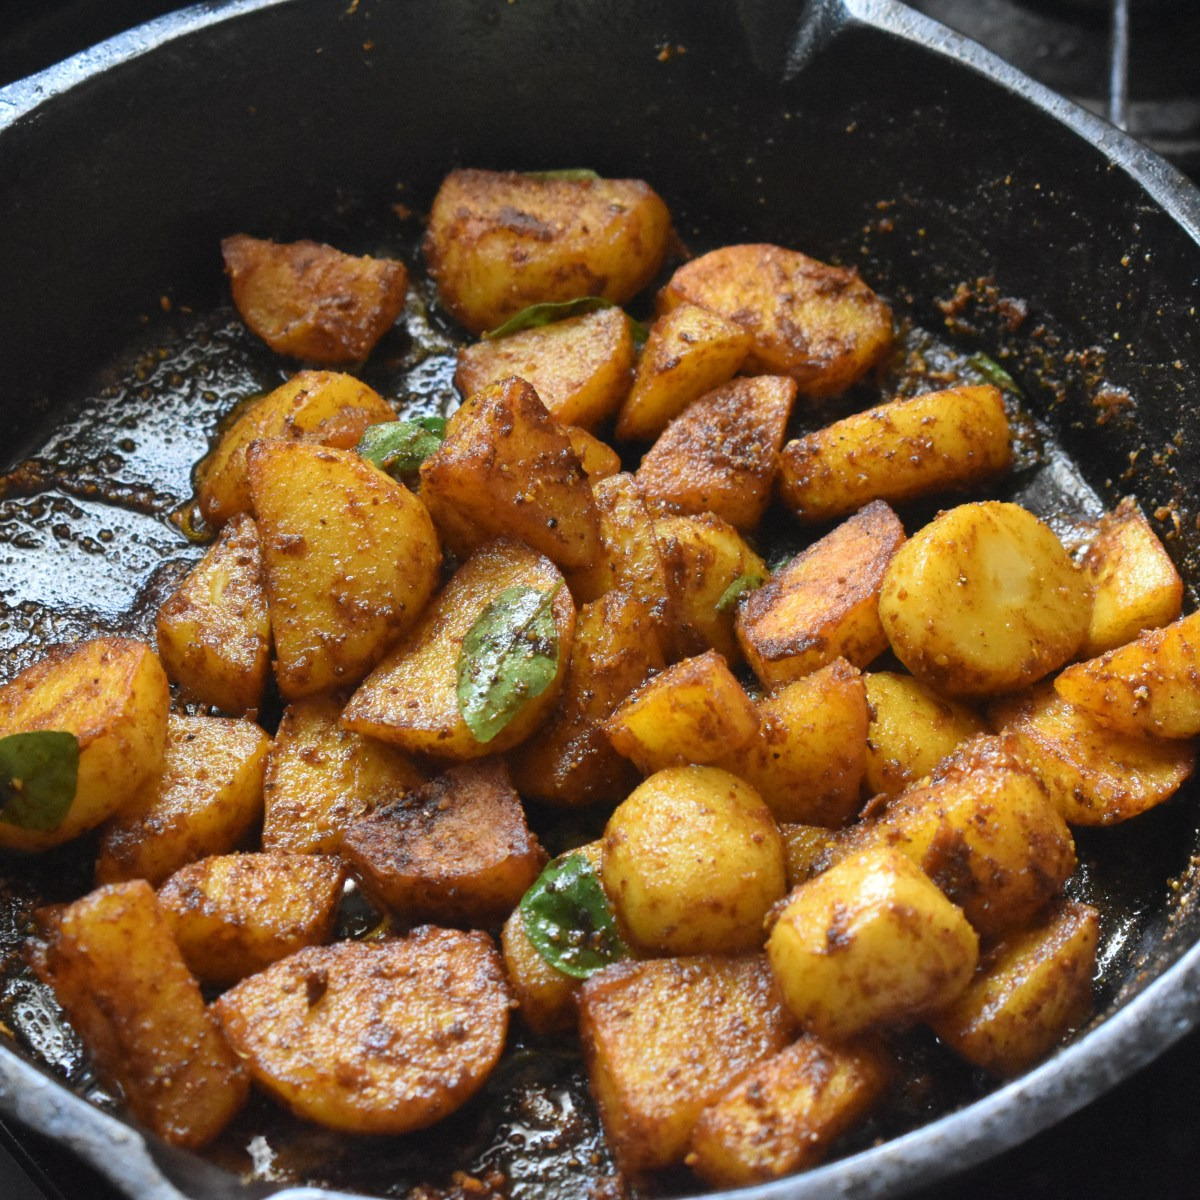 Parveen's Kitchen - Spicy potato roast